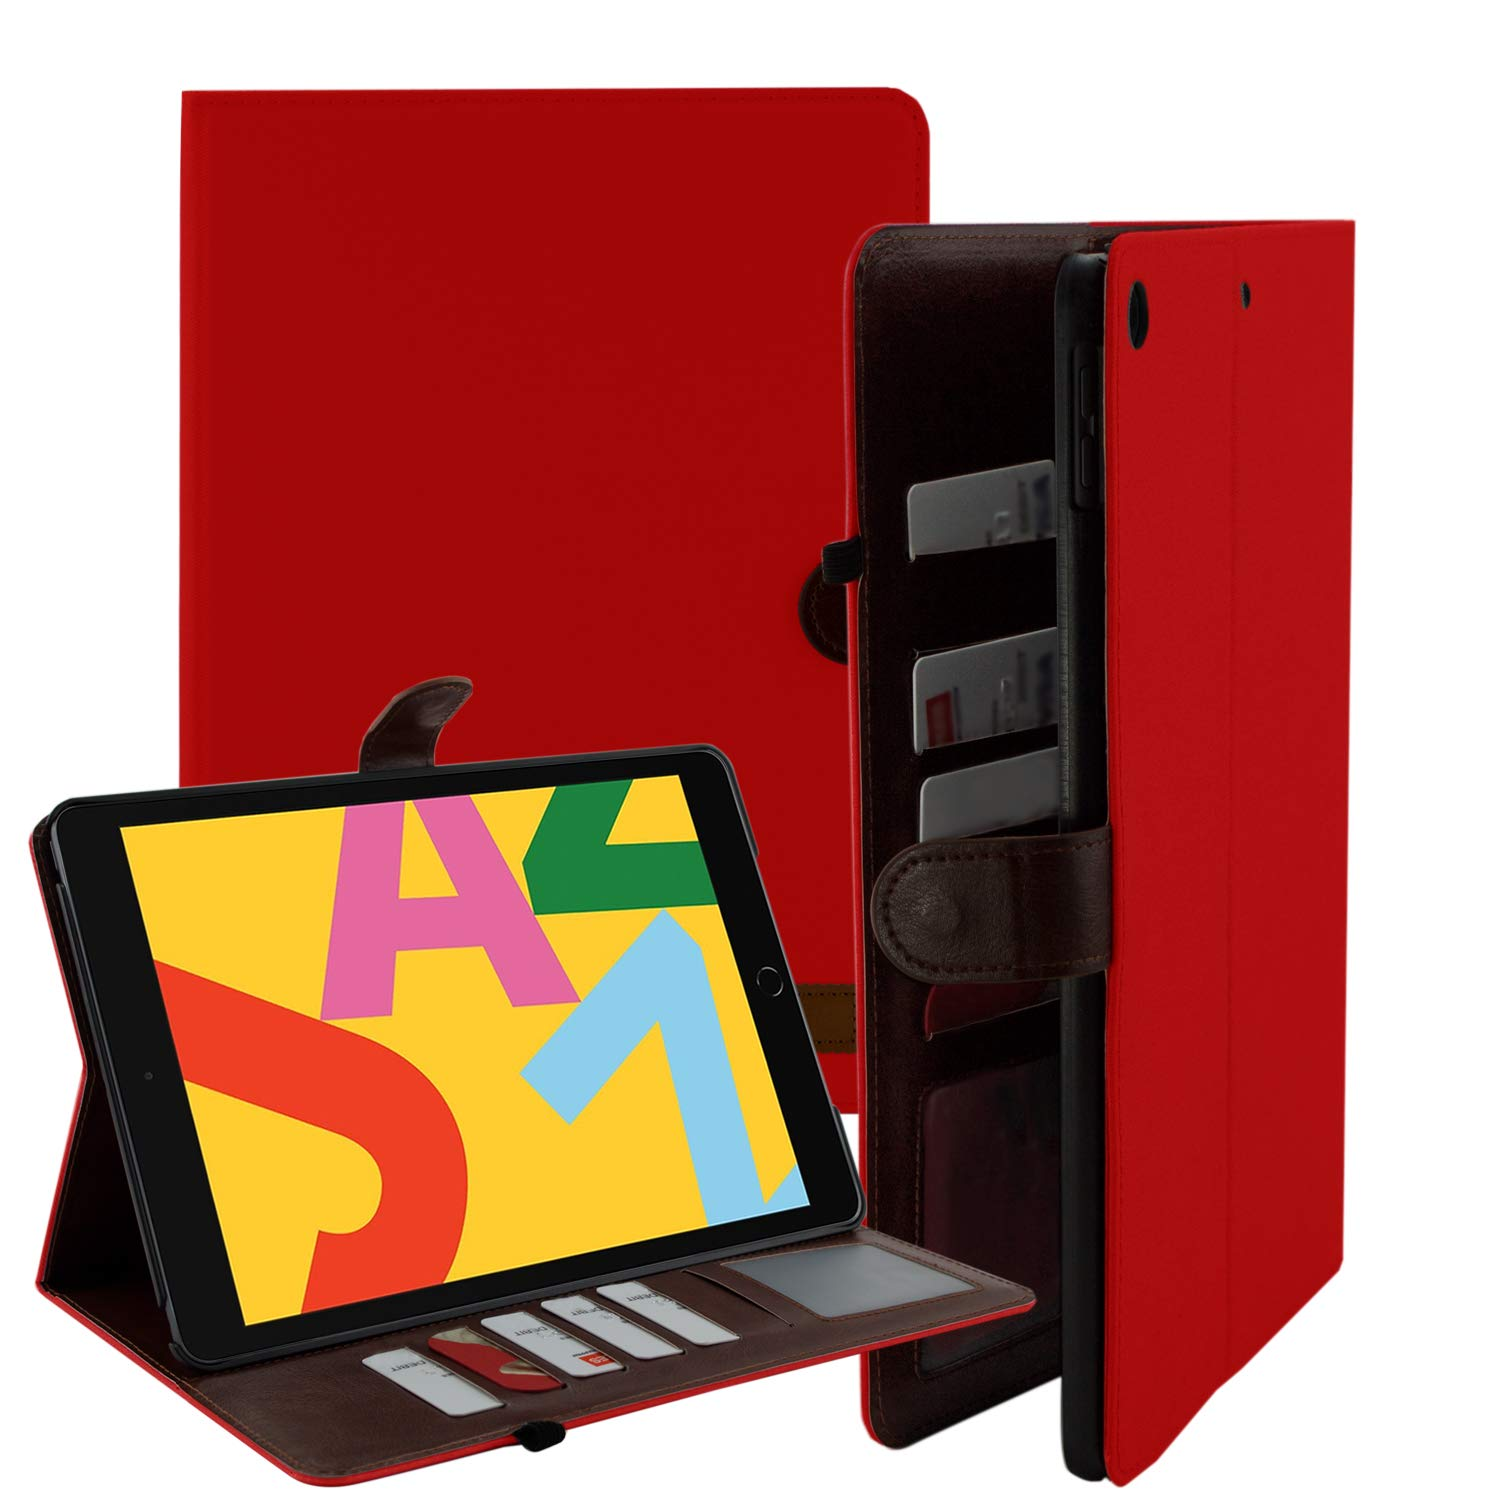 iPad 10.2 Case, Fits iPad 7th Gen, PU Leather Folio Portfolio Canvas Protective Case Cover, Slim, Lightweight with Card/ID Slots for Apple iPad 7th Generation (Red)